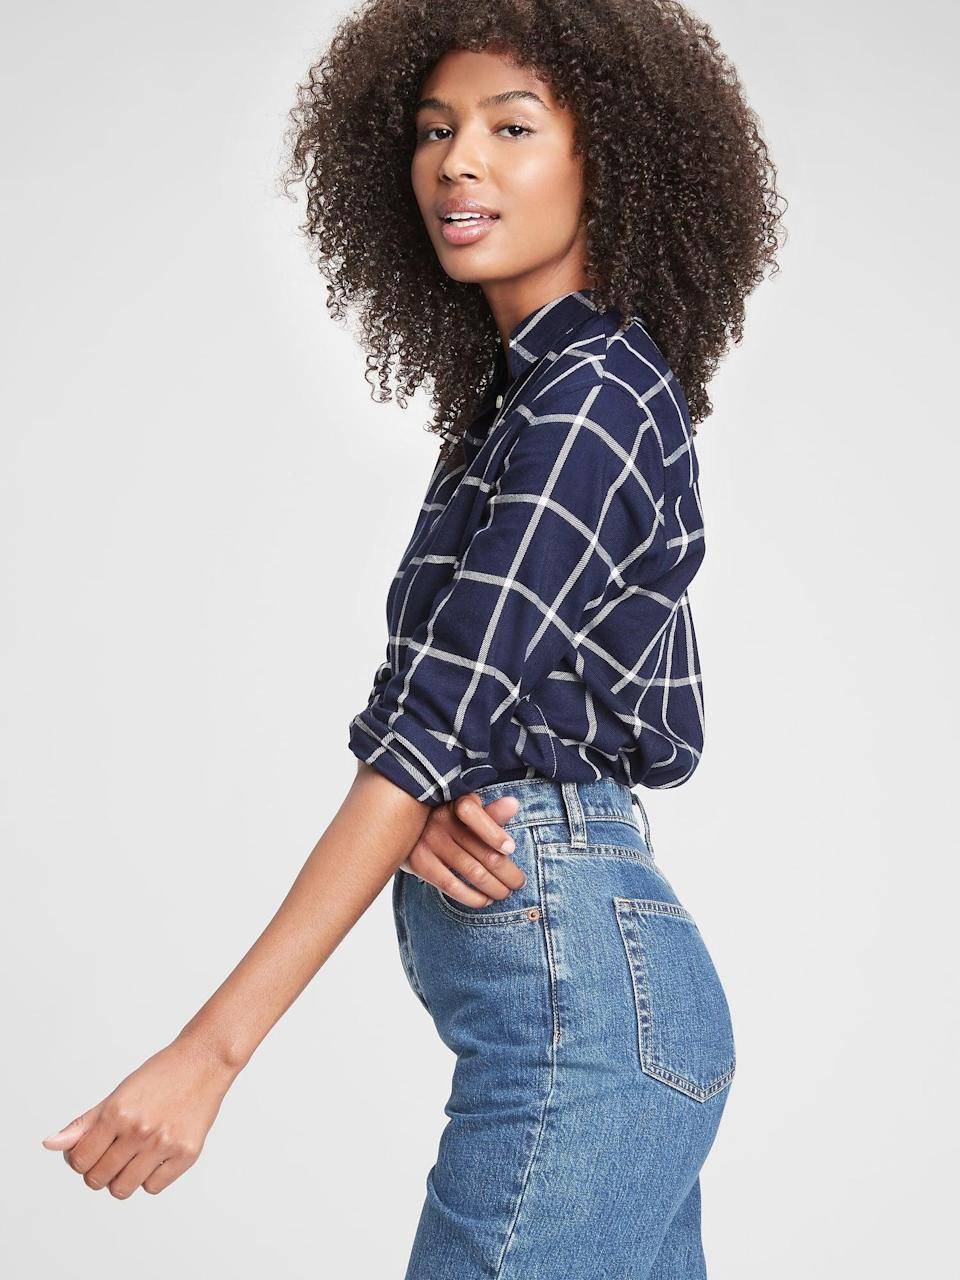 <p>We love this <span>Gap Blue Window Pane Plaid Everyday Shirt</span> ($26, originally $60). It's very girls next door cool. Couldn't you see Joey Potter wearing this on <strong>Dawson's Creek</strong>?</p>